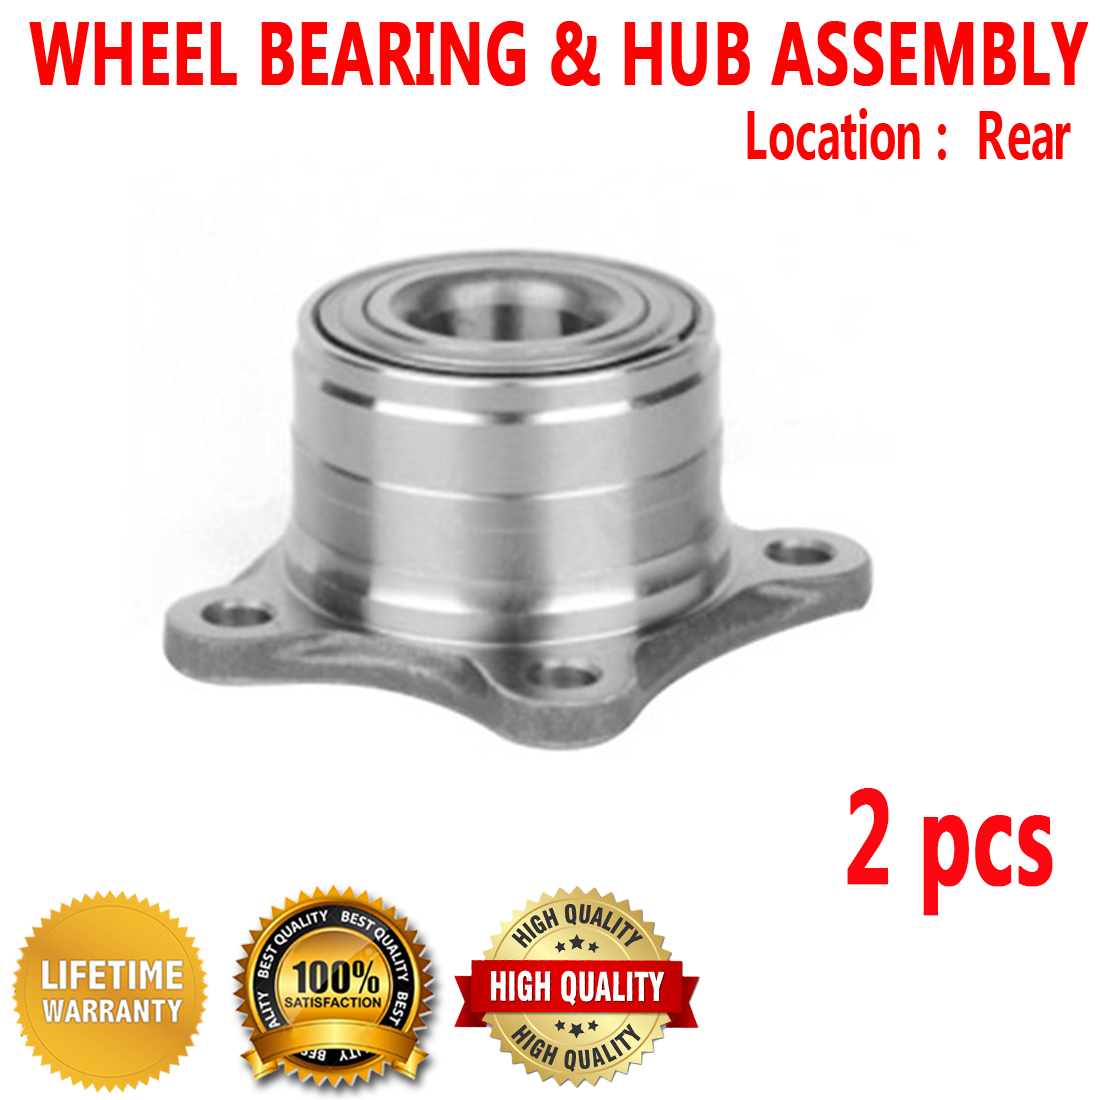 1998 fits Toyota Camry Front Wheel Bearing One Bearing Included with Two Years Warranty Note: 2.2 Liter L4, 3.0 Liter V6 FWD